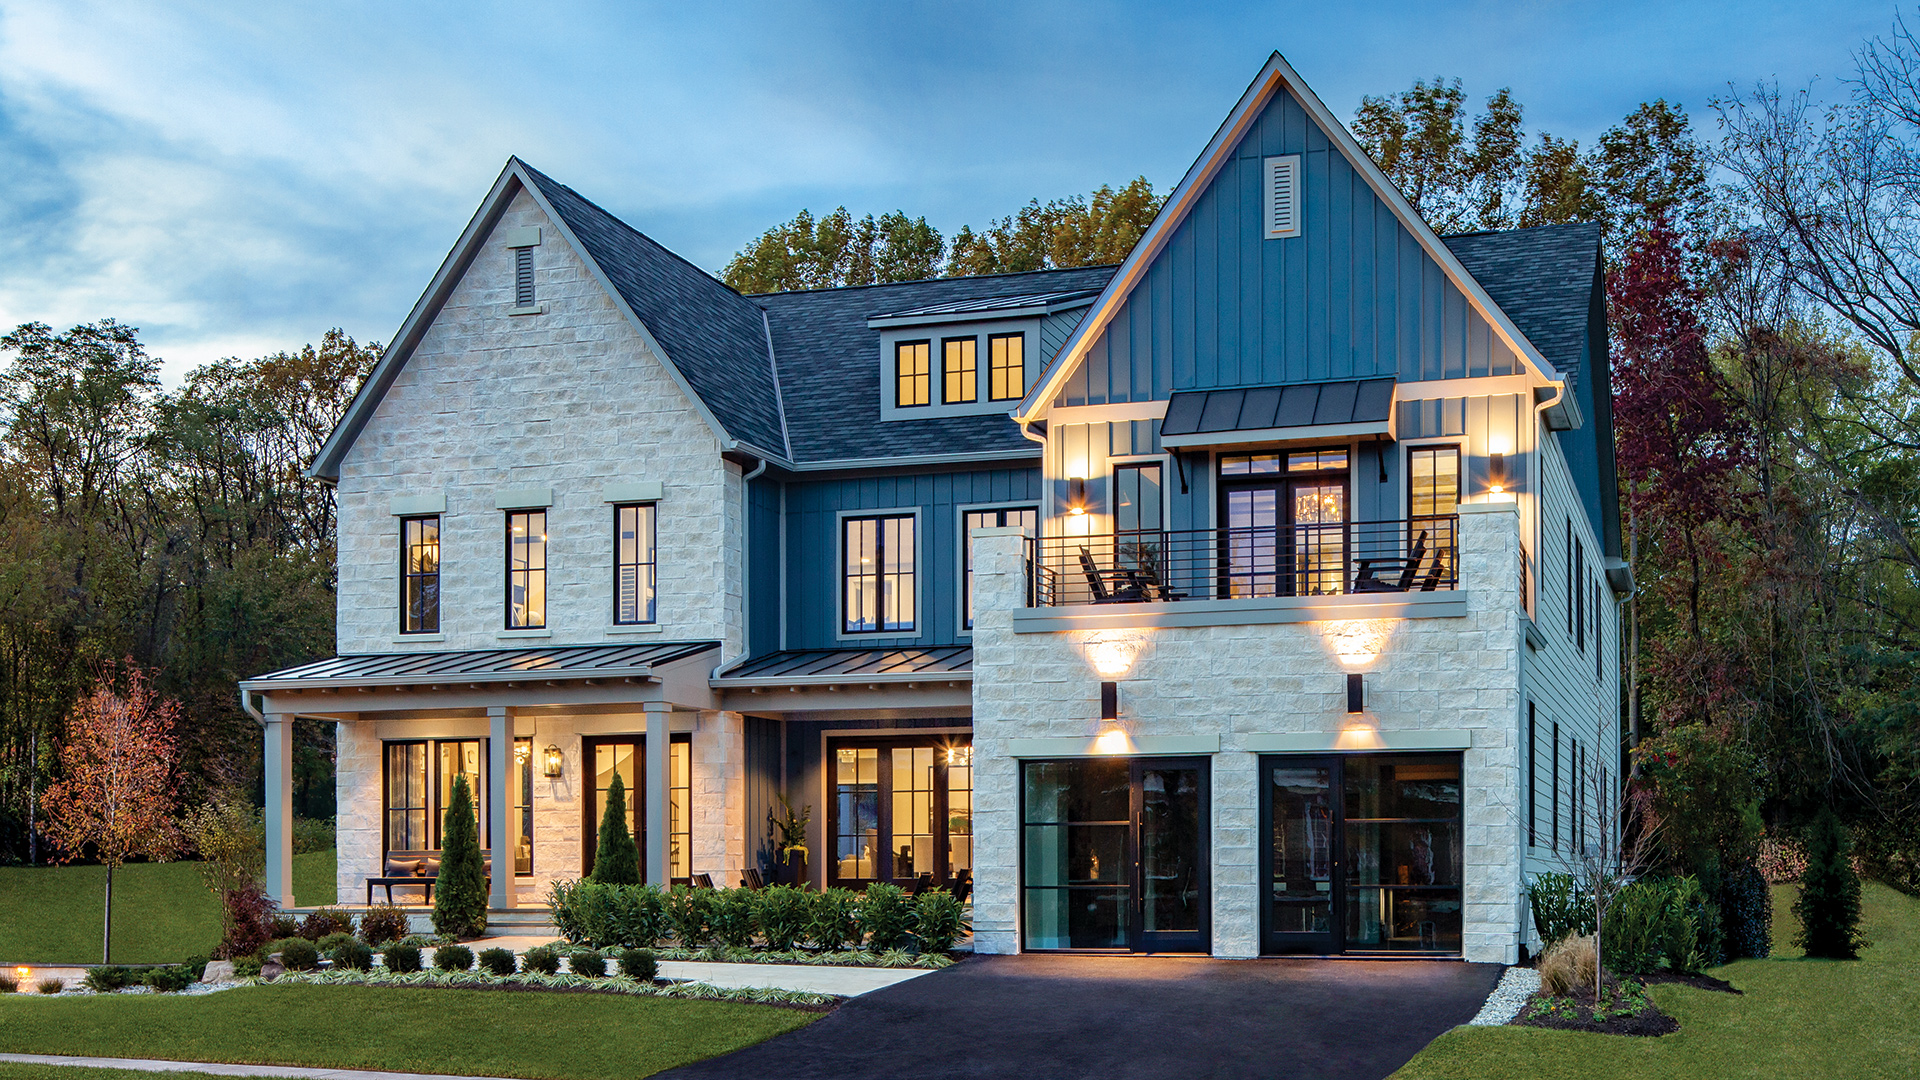 New Luxury Homes For Sale in McLean, VA | Retreat at McLean